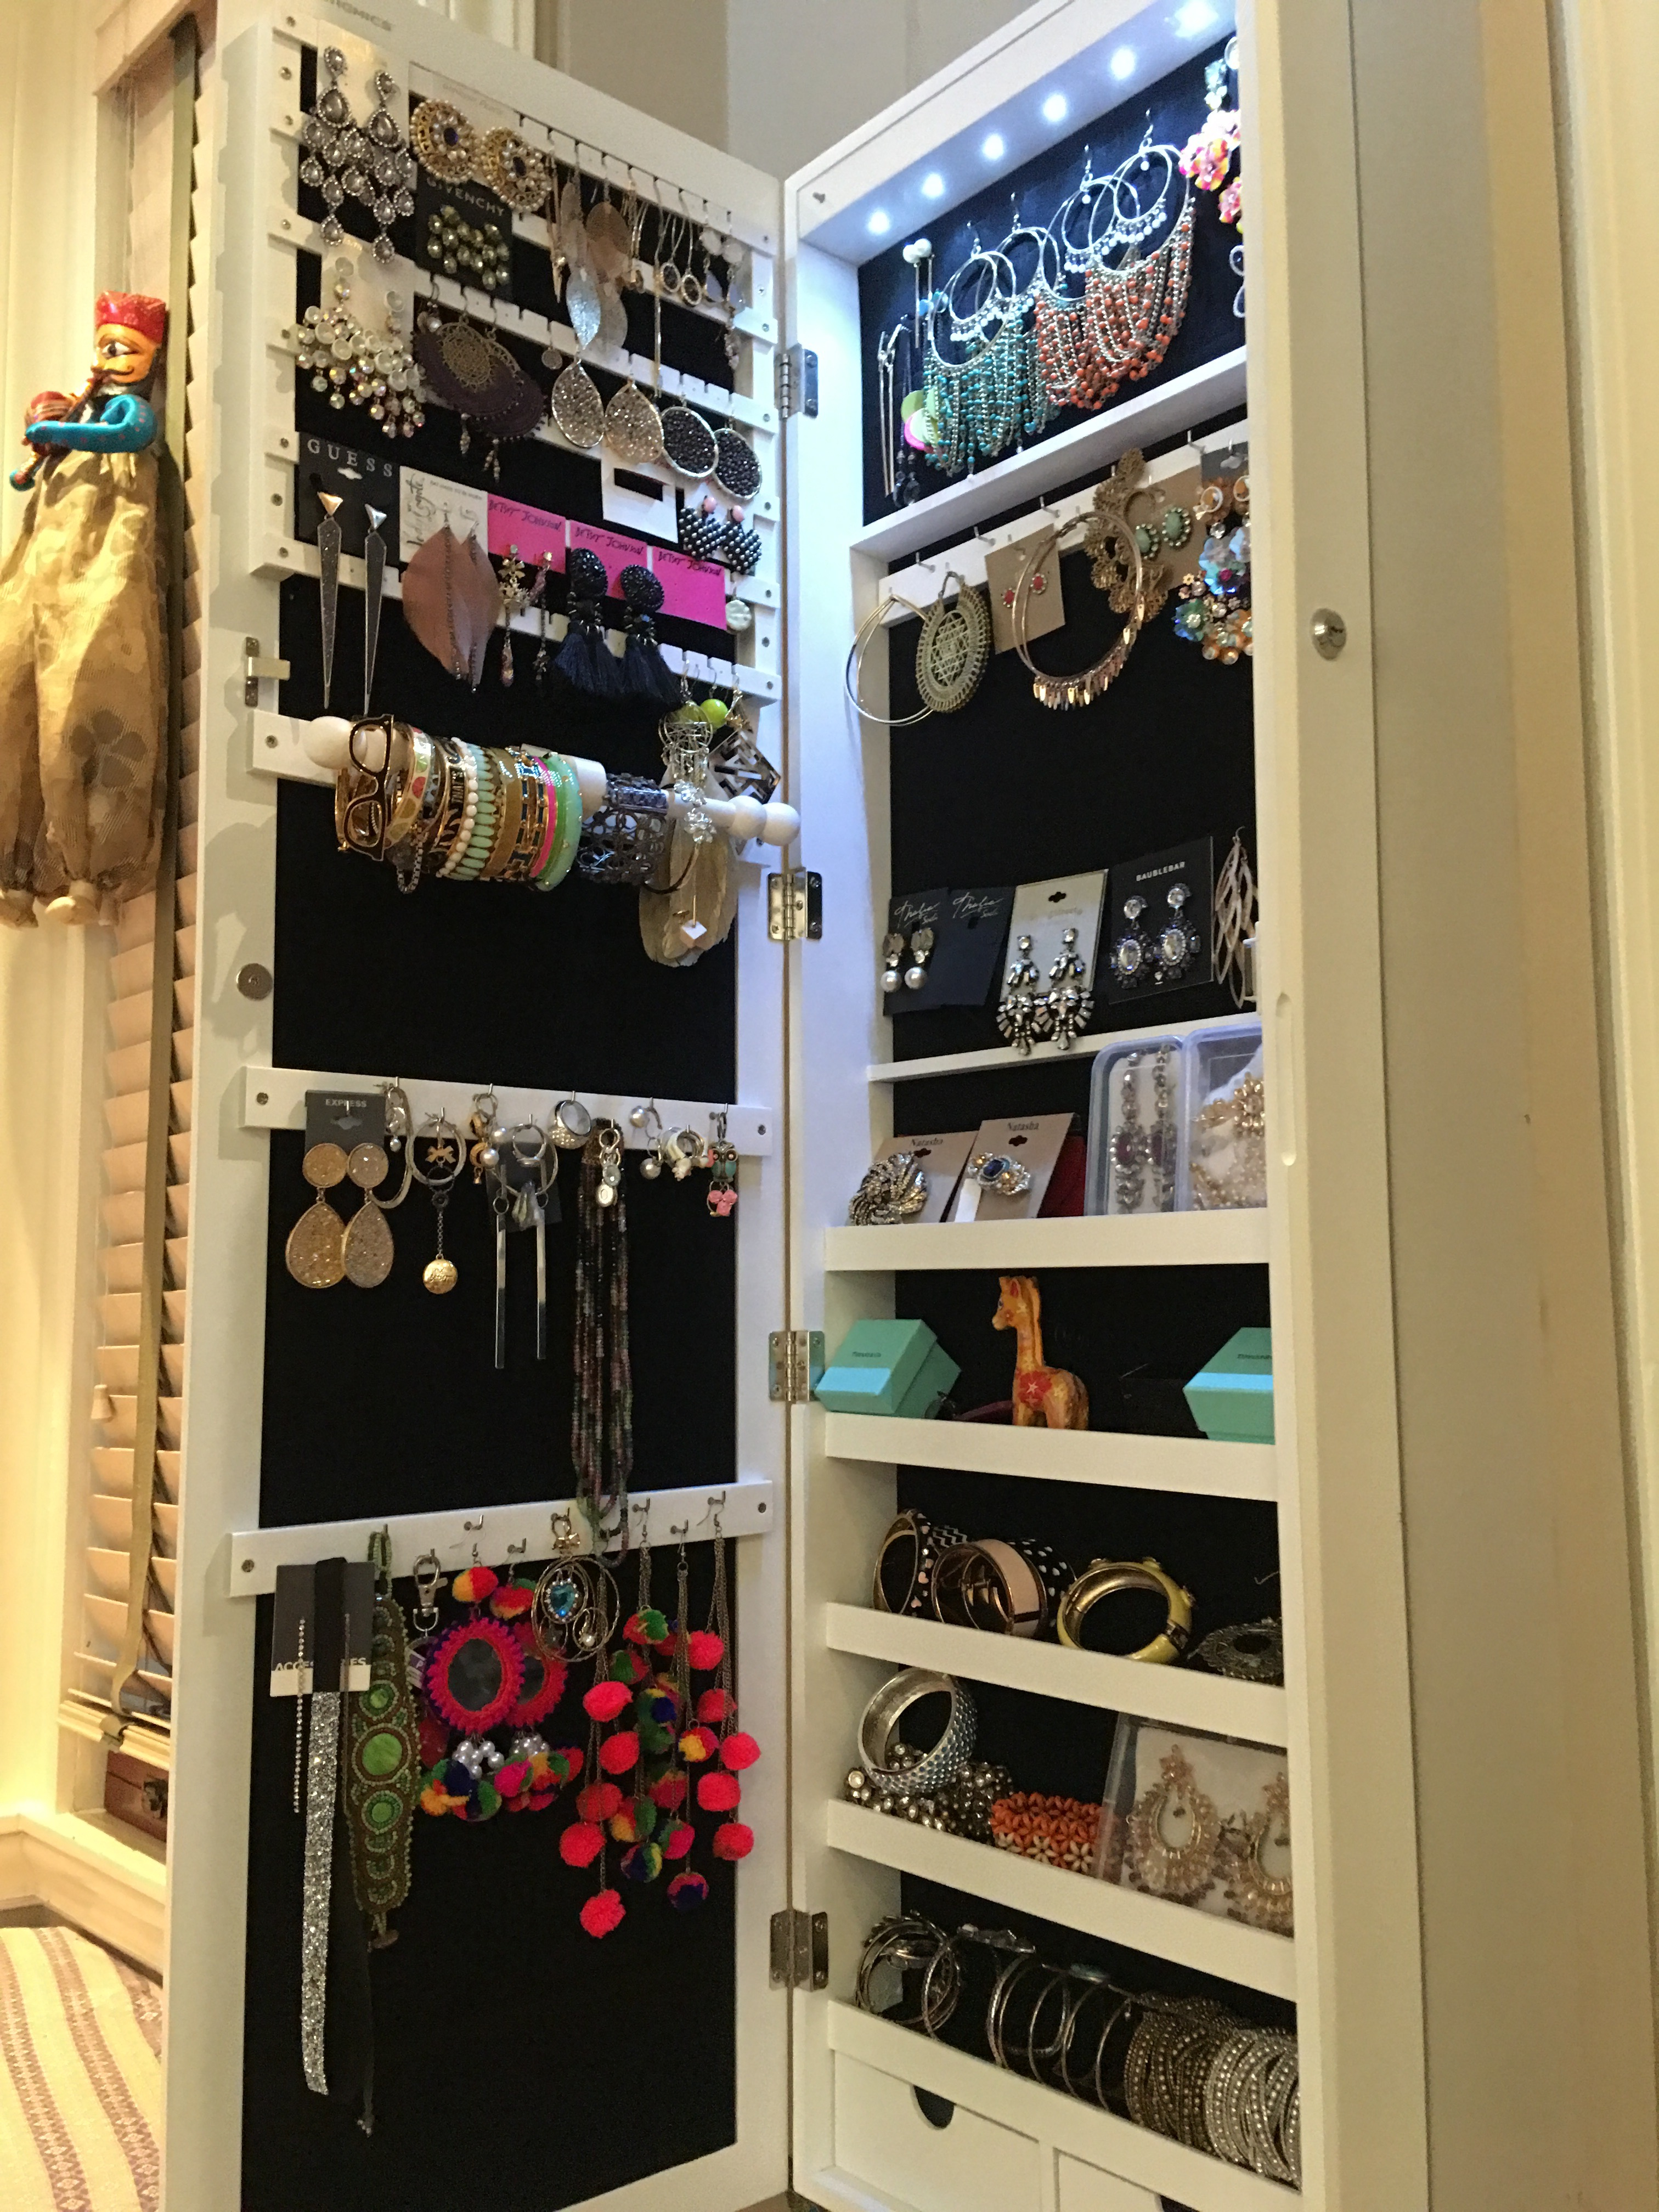 mounted inside like a m jewelry have several hook amount me p hooks img hung shoe necklaces another crazy i of people organizer rooism closet solution wall my for coat you with